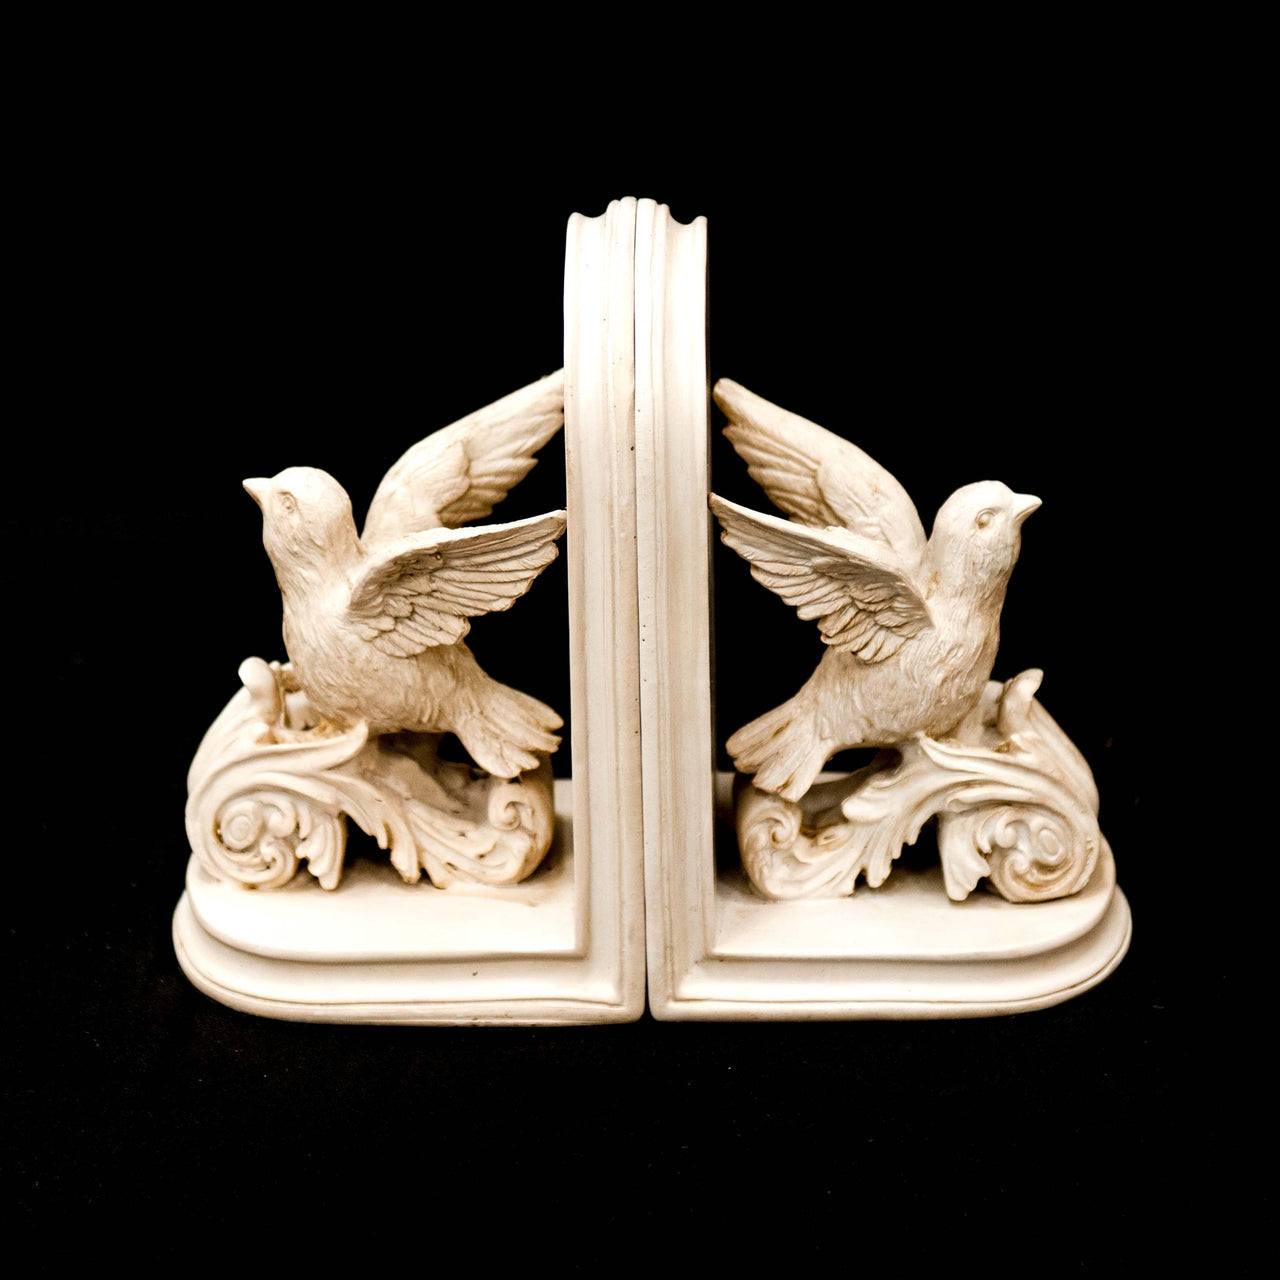 HCHD5227 - Dove Bookends